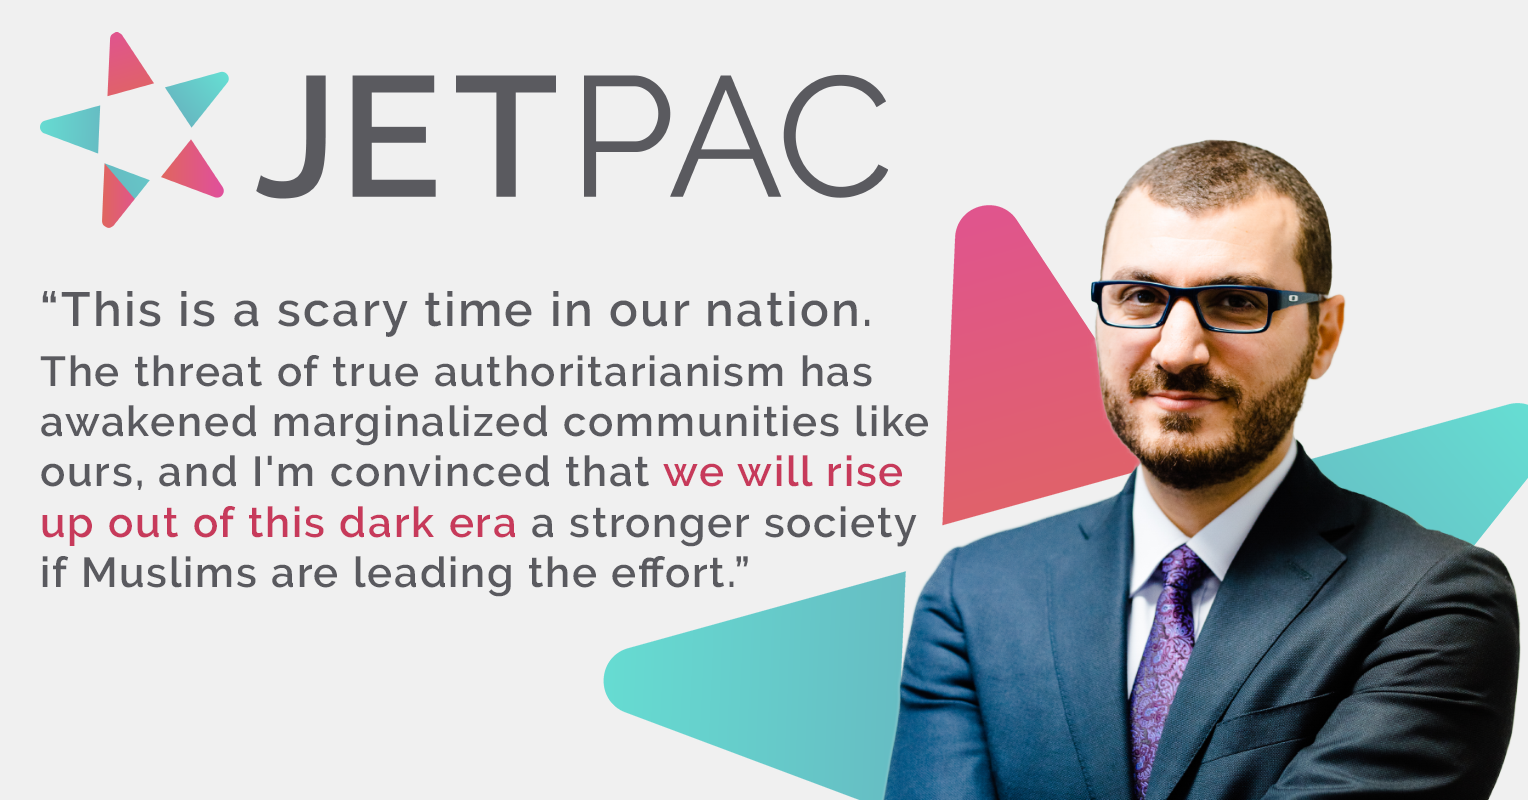 Welcoming Jetpac's New Executive Director